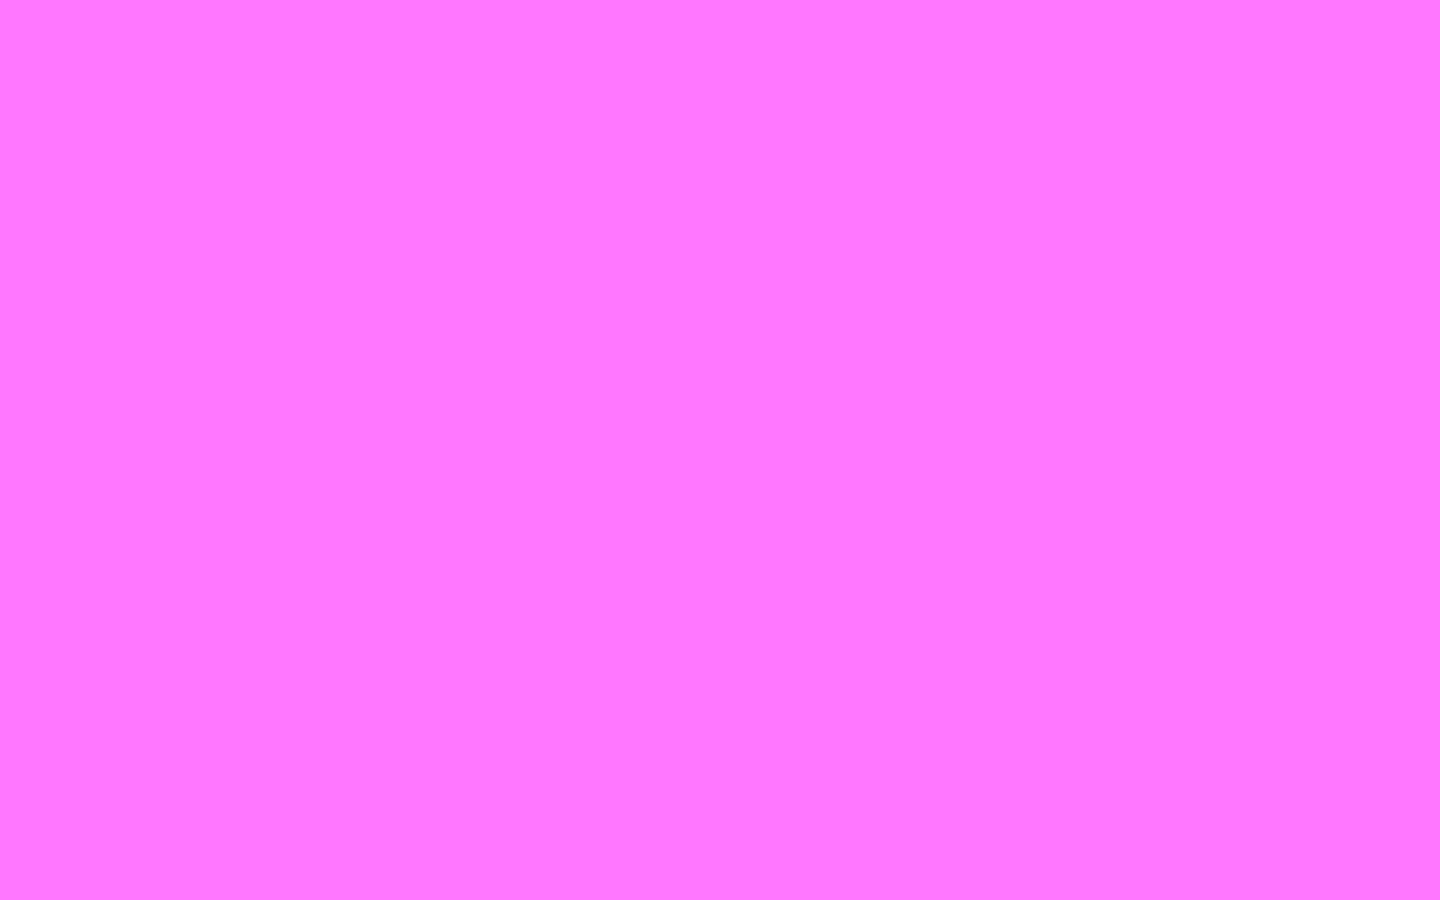 1440x900 Fuchsia Pink Solid Color Background